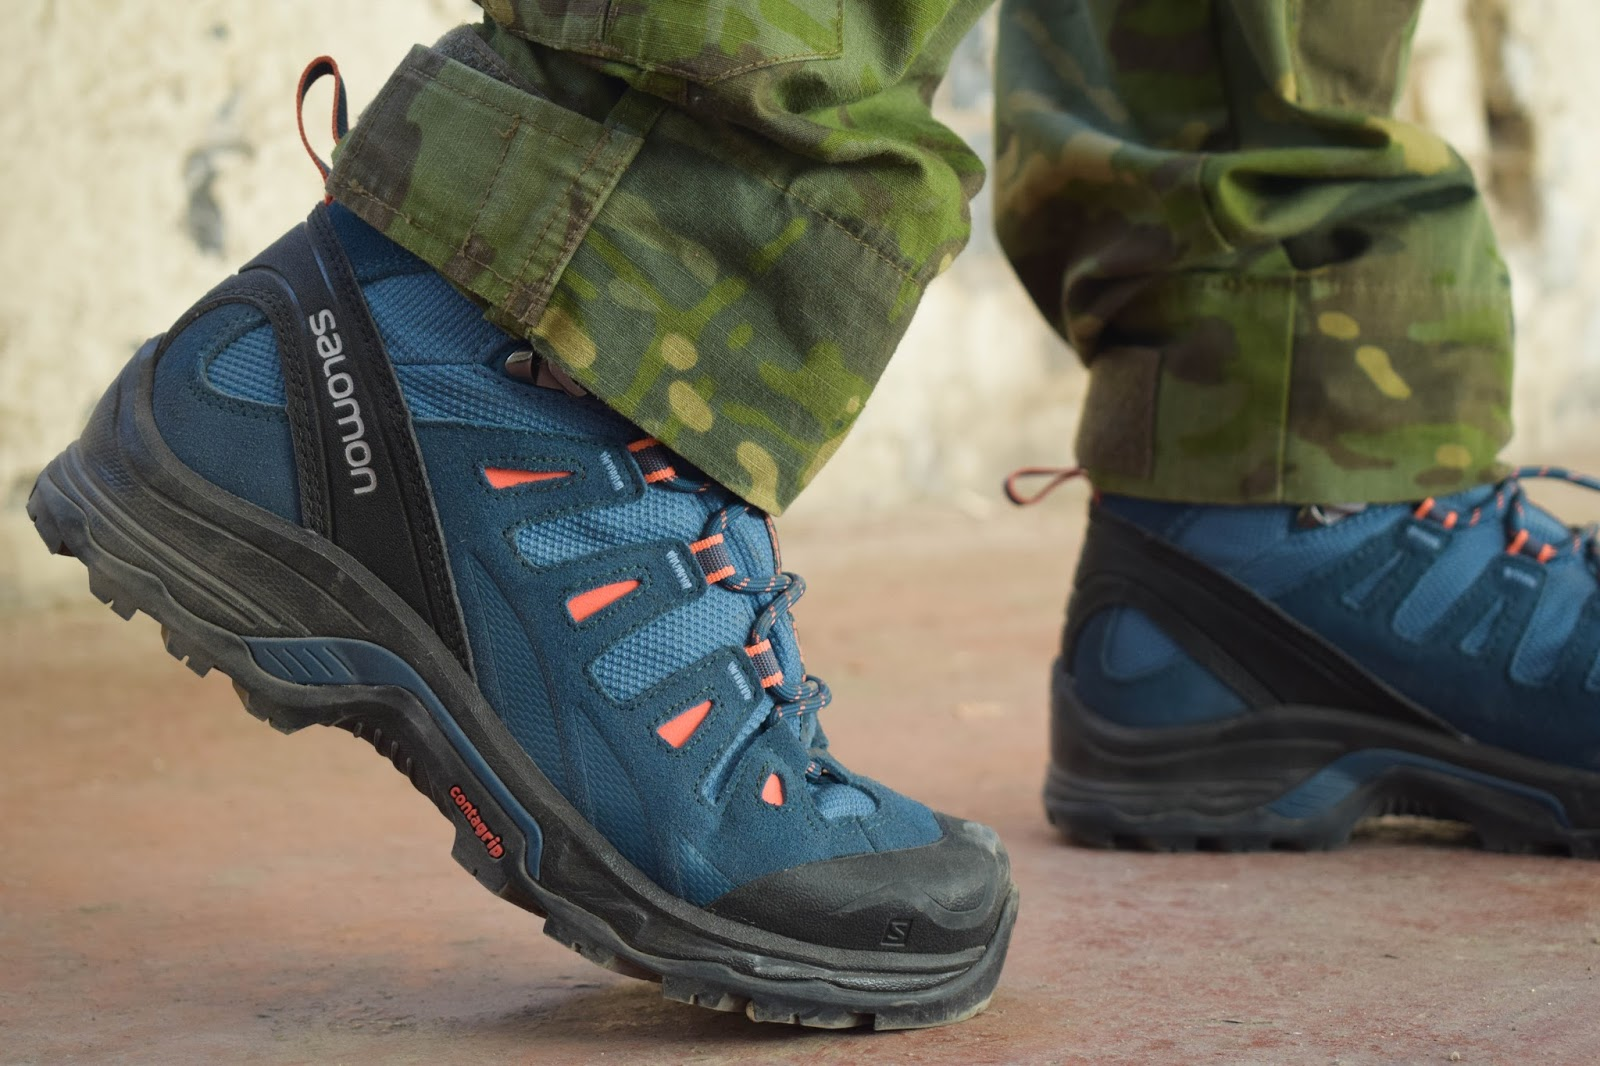 e71084b48e9c The Quest Prime GTX women s is an athletic style shoe by Salomon that is  designed for hiking and backpacking. The design focuses on being  lightweight and ...